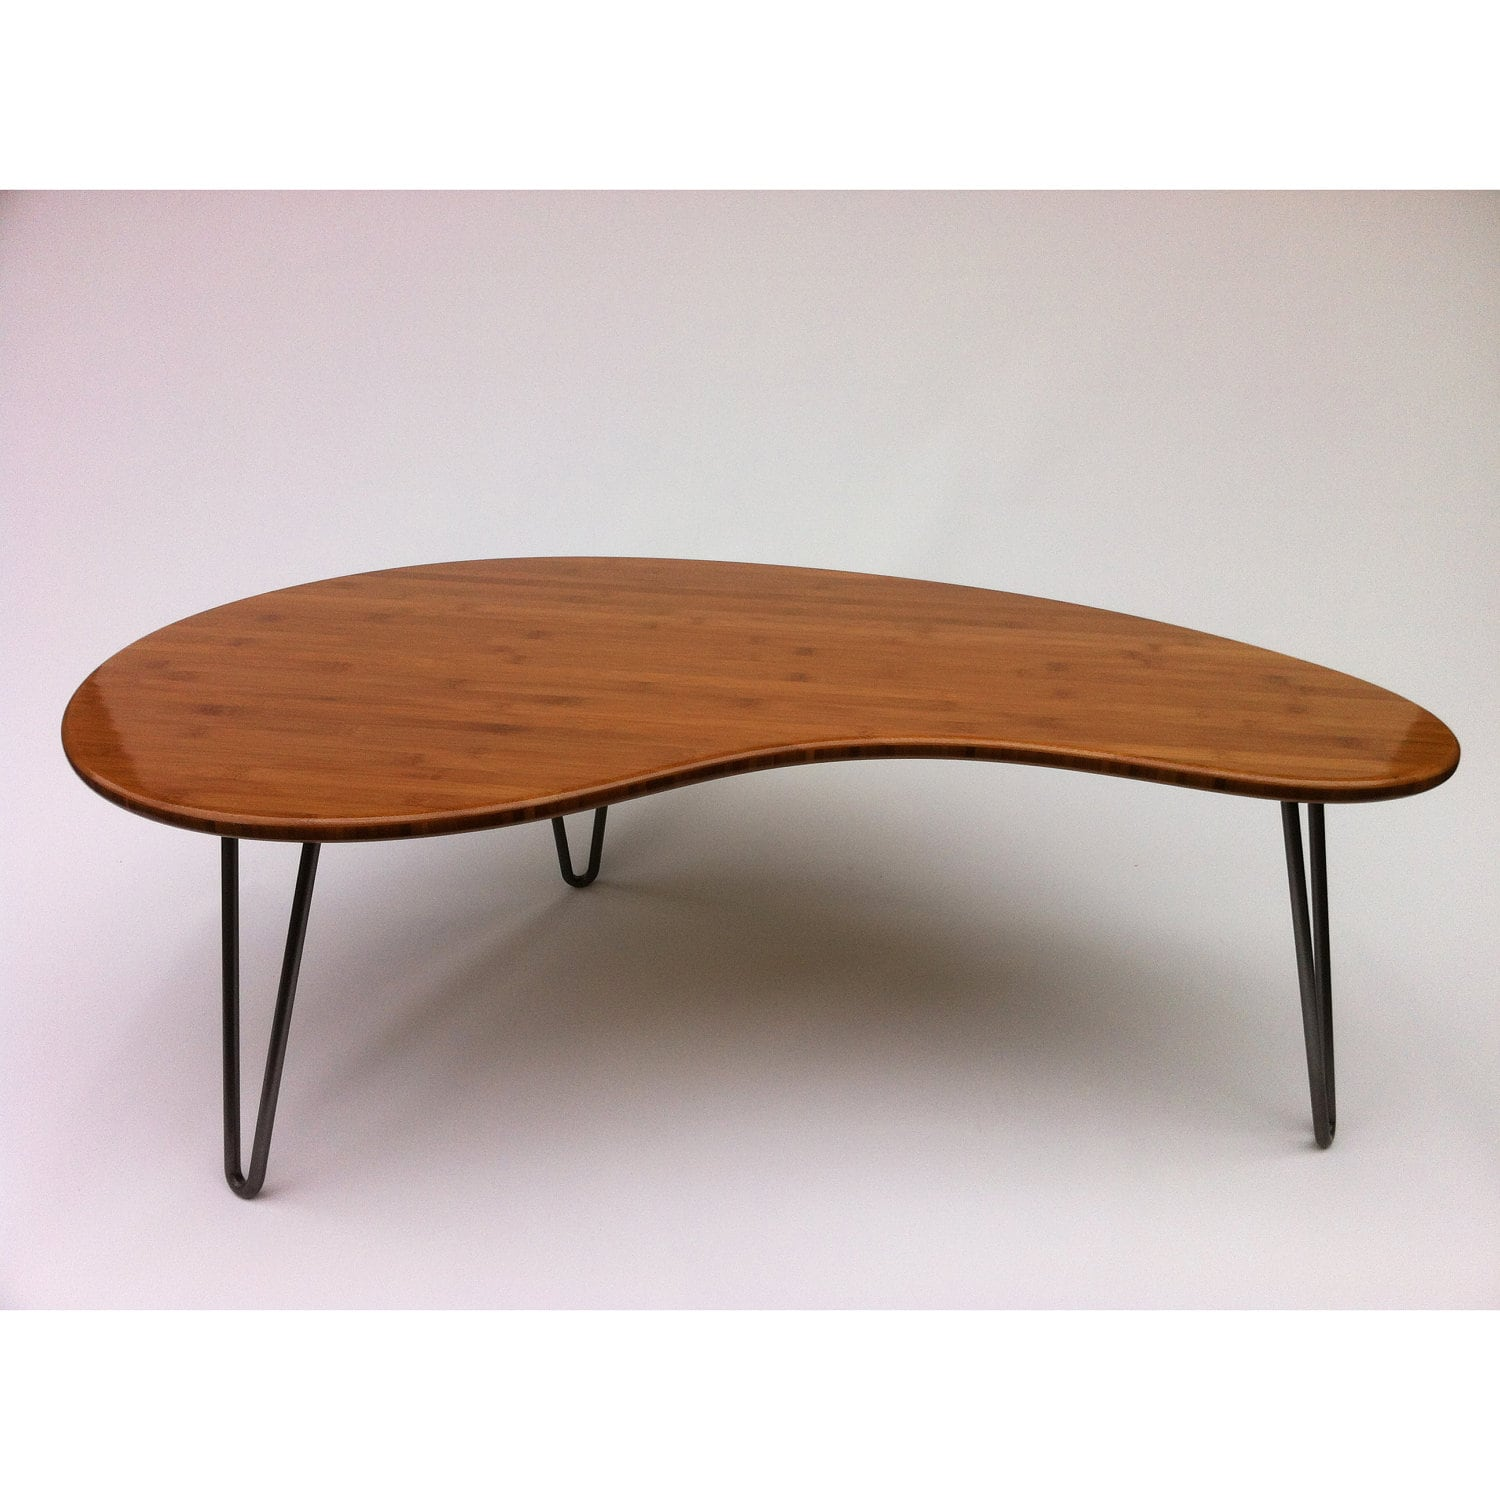 Mid Century Modern Coffee Table With Planter: Mid Century Modern Coffee/Cocktail Table By